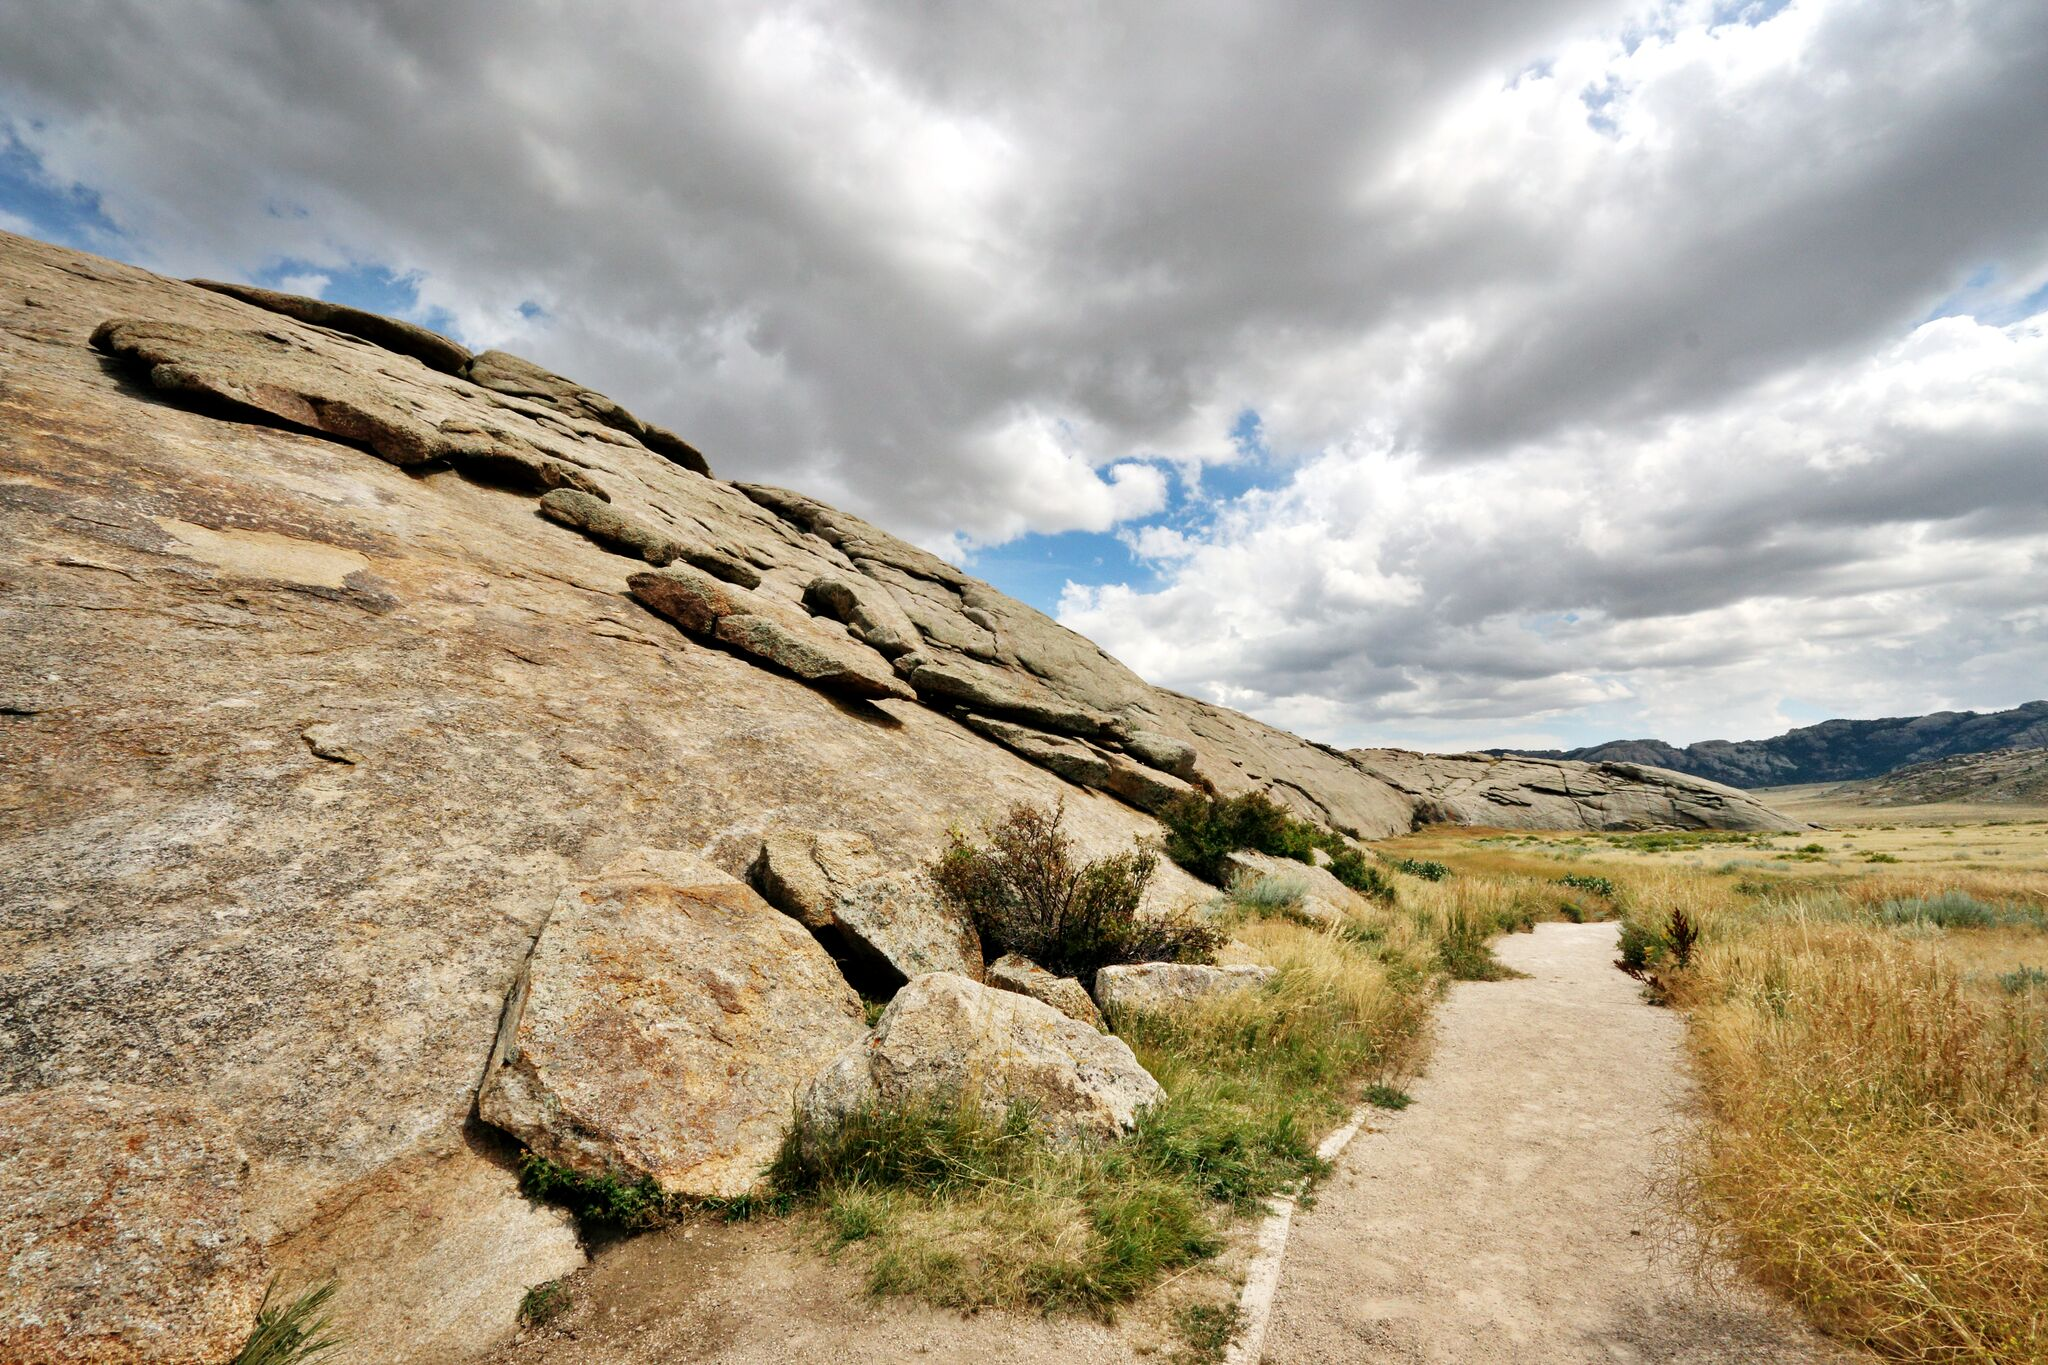 Independence Rock State Historic Site | Travel Wyoming. That's WY